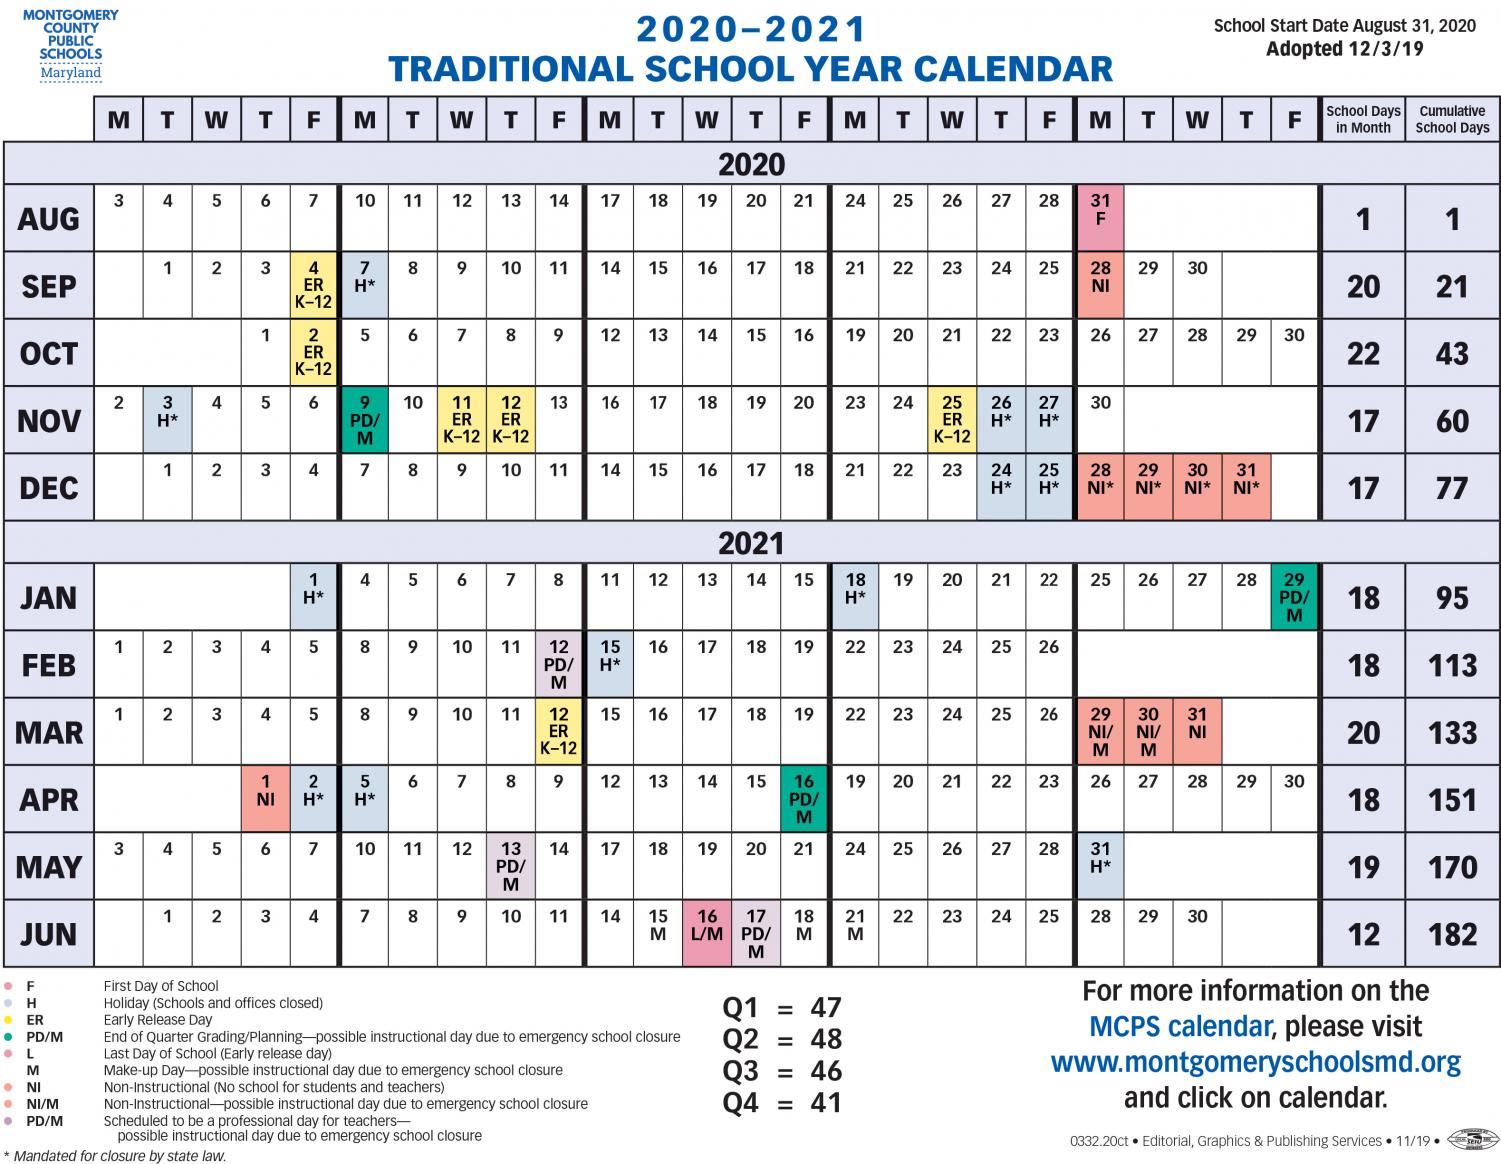 The new 2020-2021 school year calendar includes all holidays and days off.